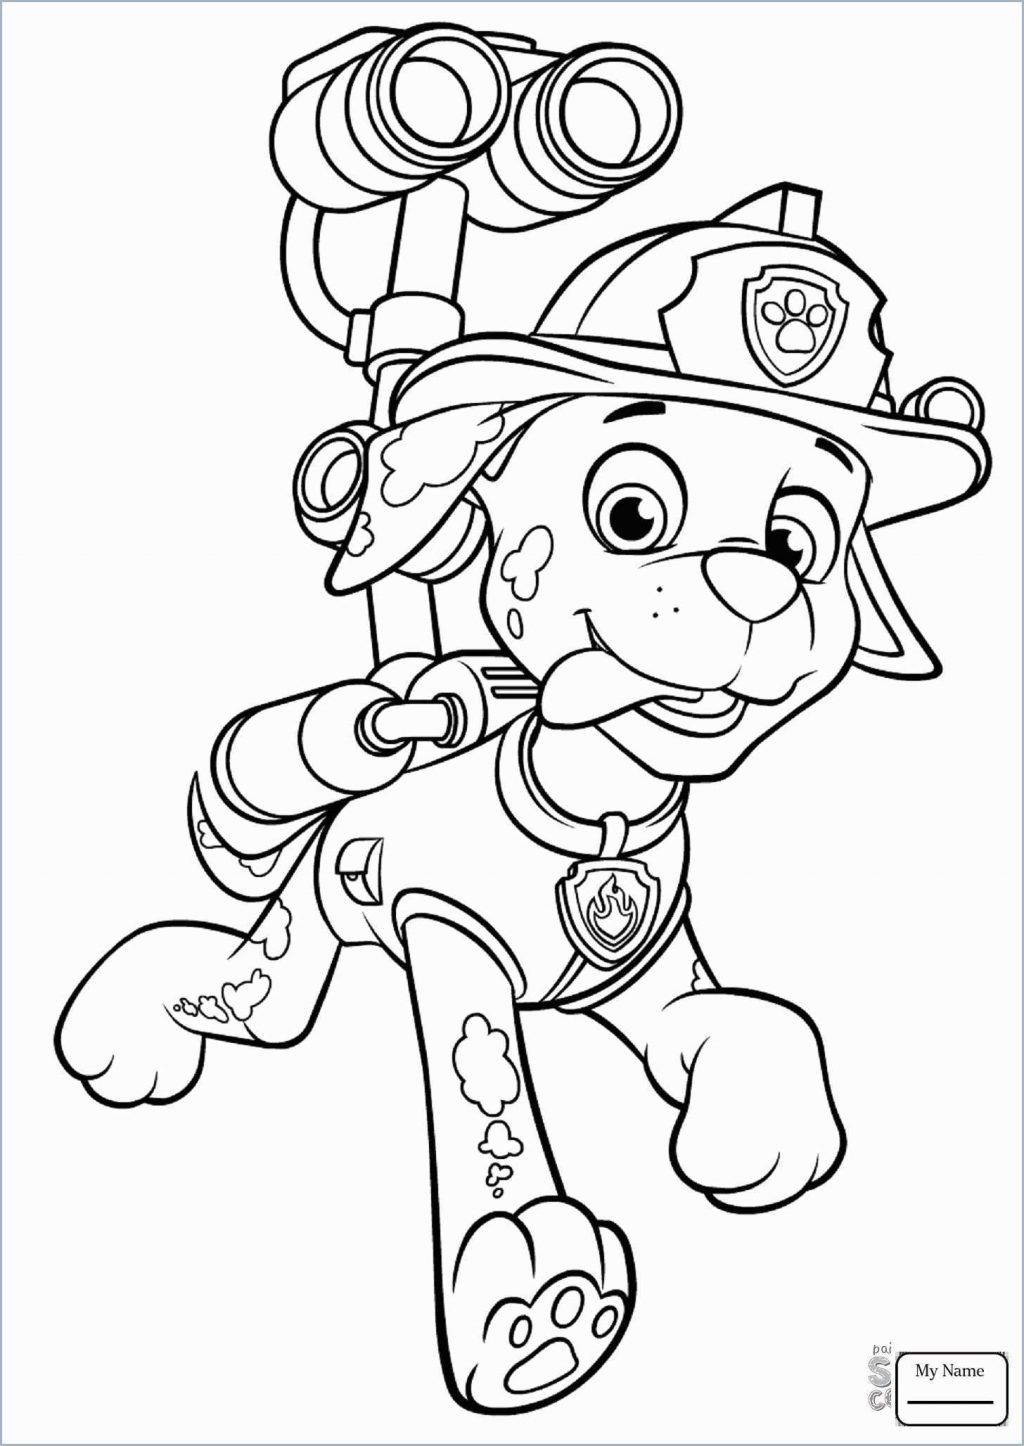 Paw Patrol Coloring Pages Marshall Marshall Paw Patrol Drawing At Paintingvalley Explore